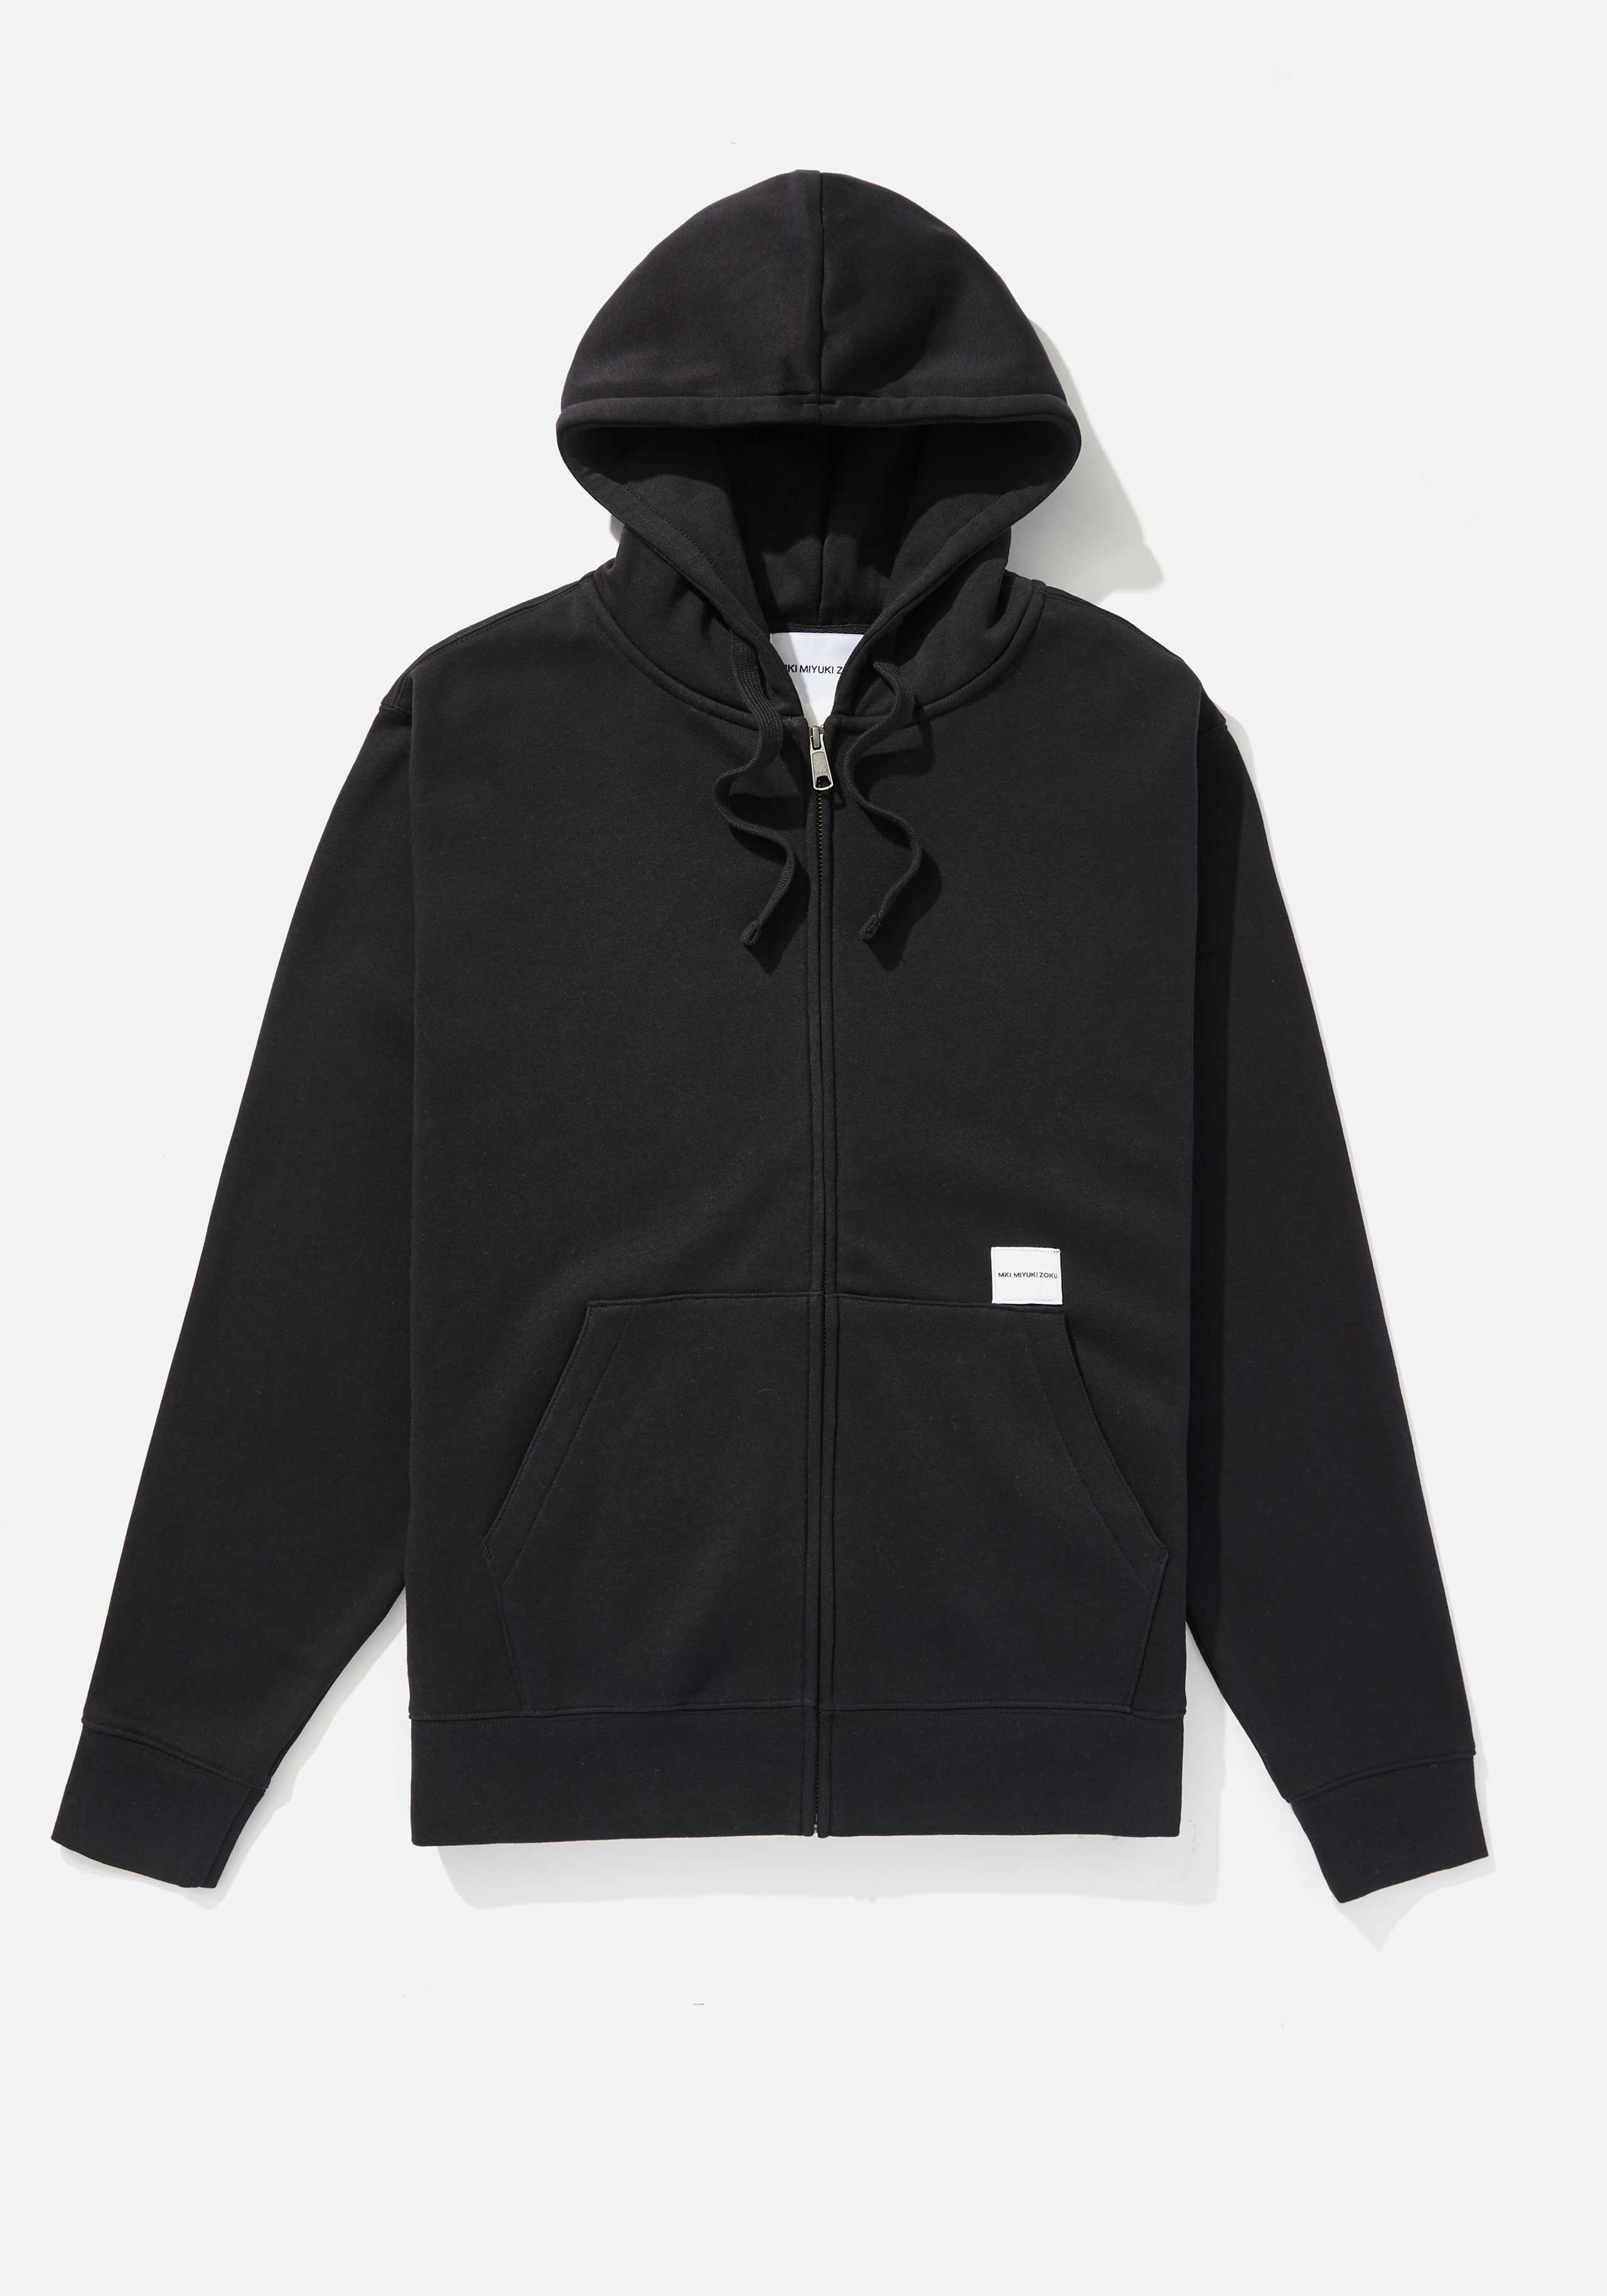 mki relaxed basic zip hoody 1